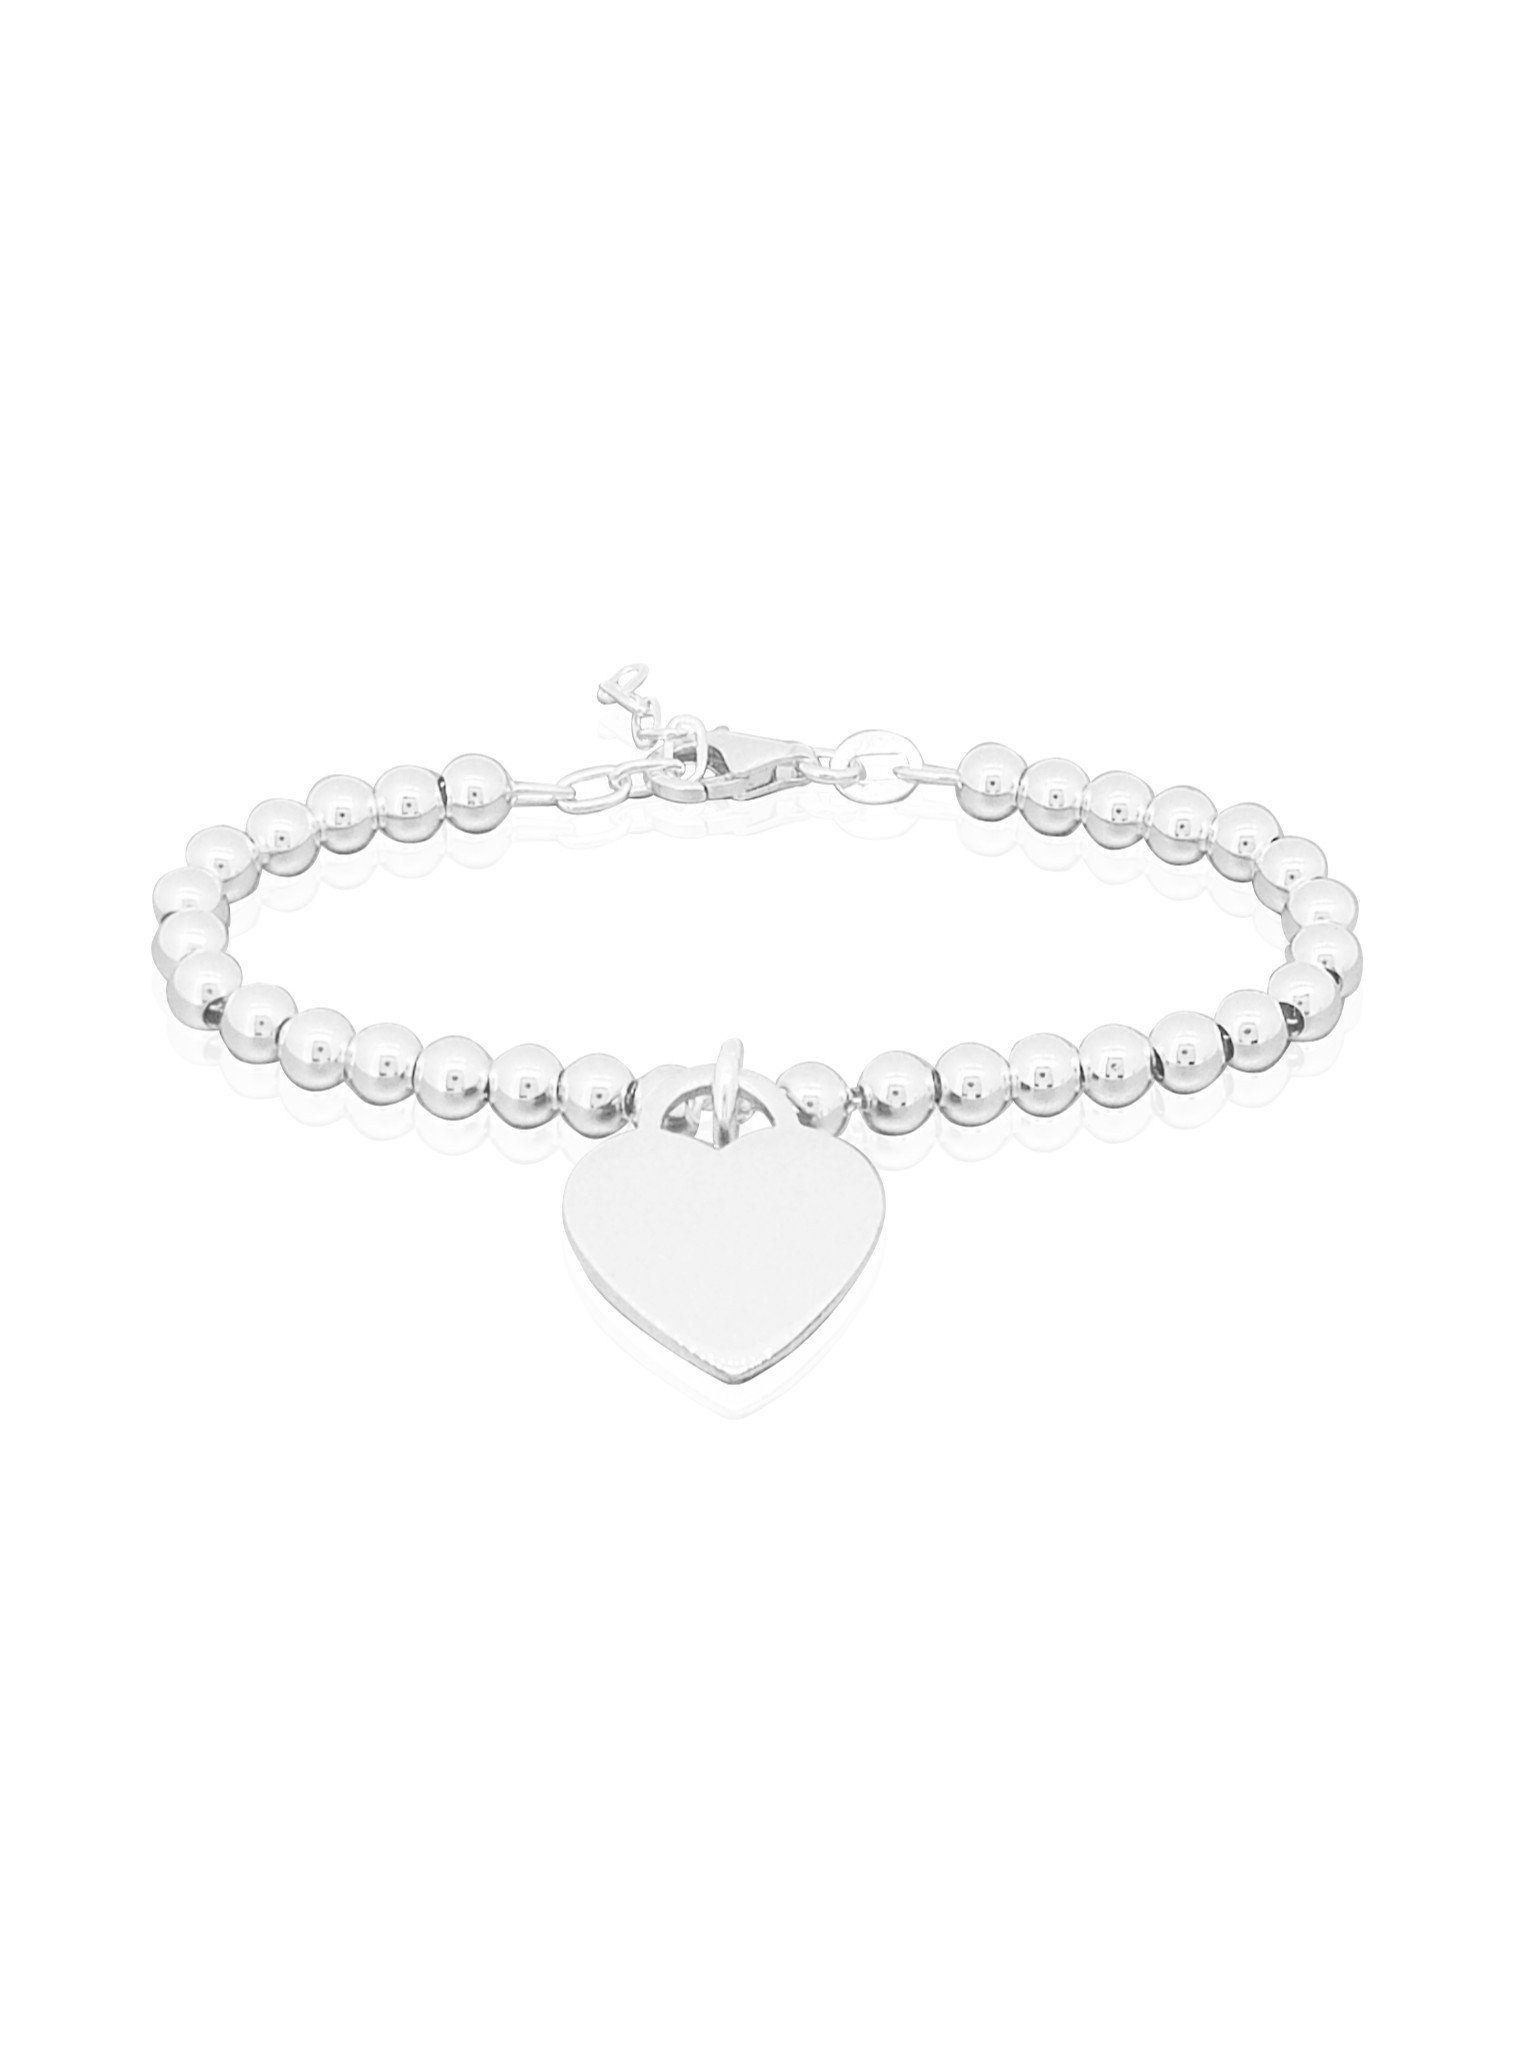 Heart Tag Charm Ball Bead Bracelet in Sterling Silver